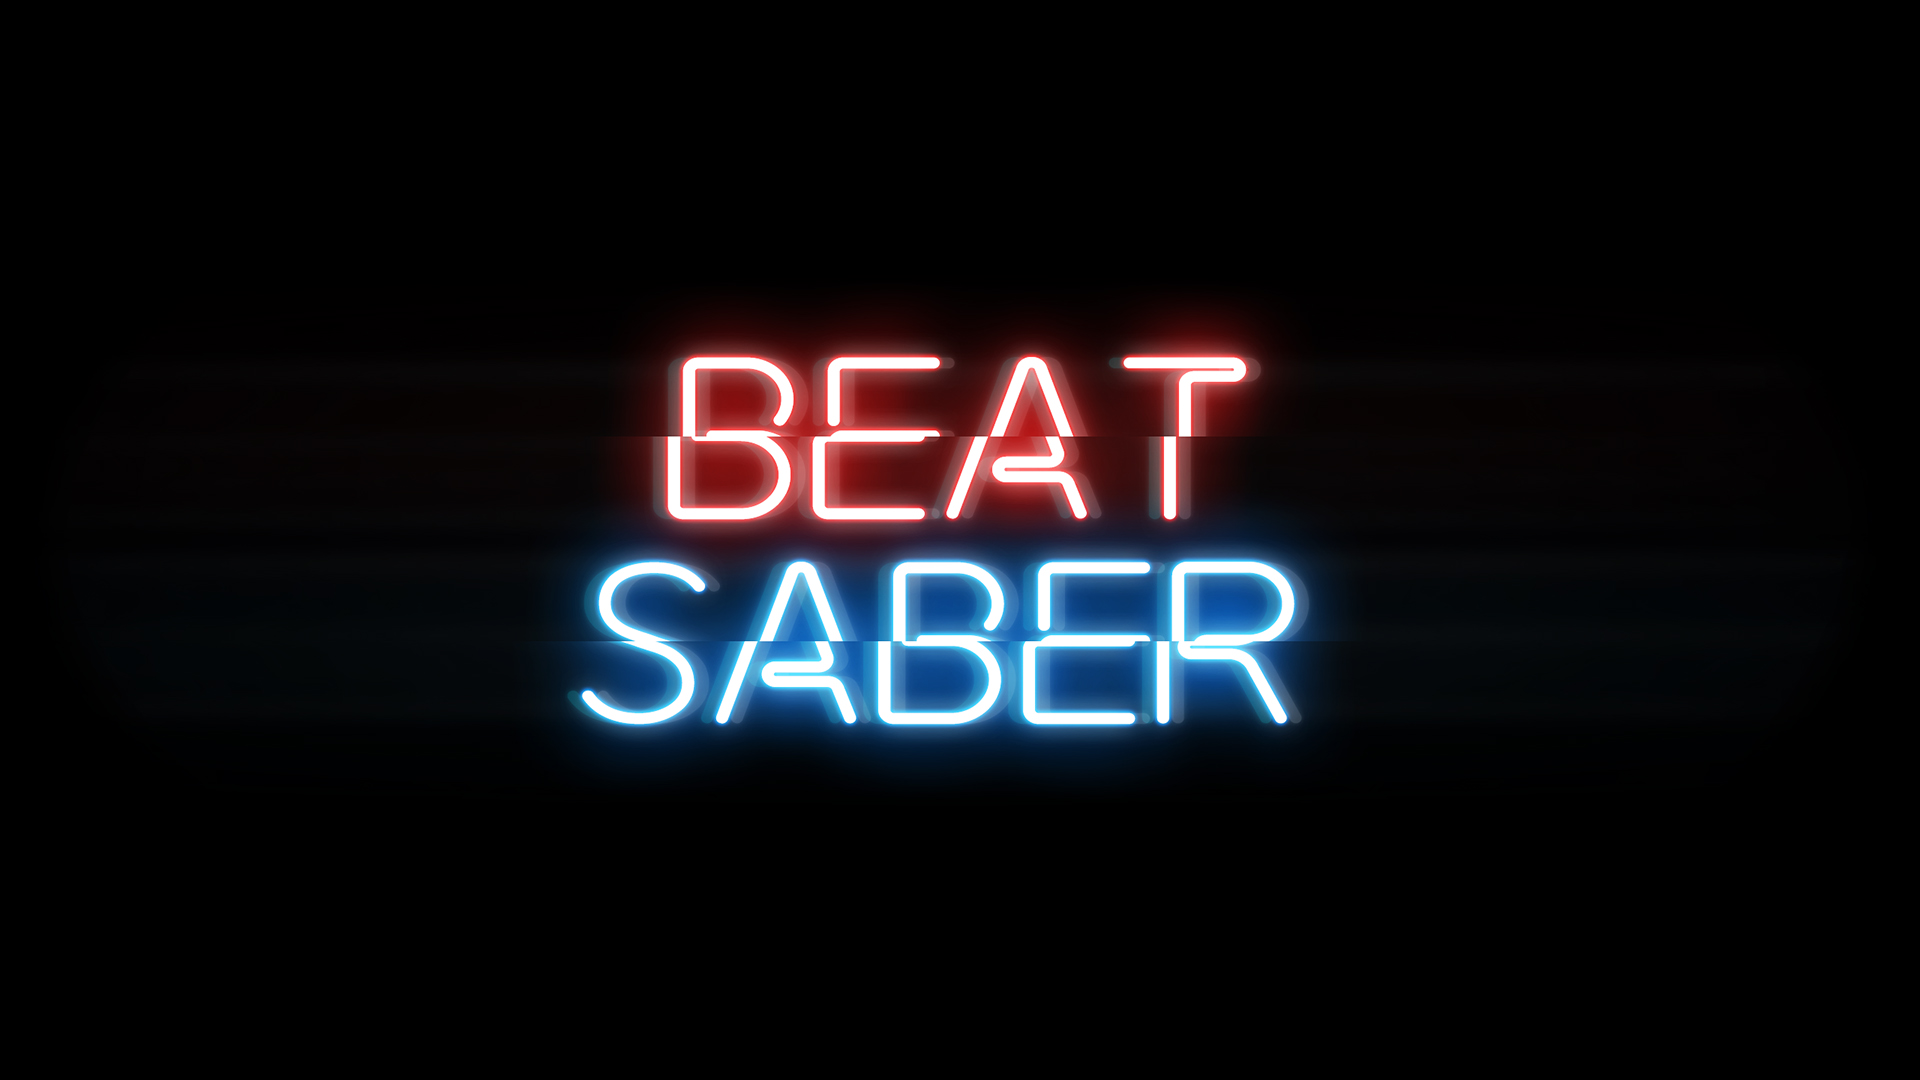 beat-saber-virtual-reality-events